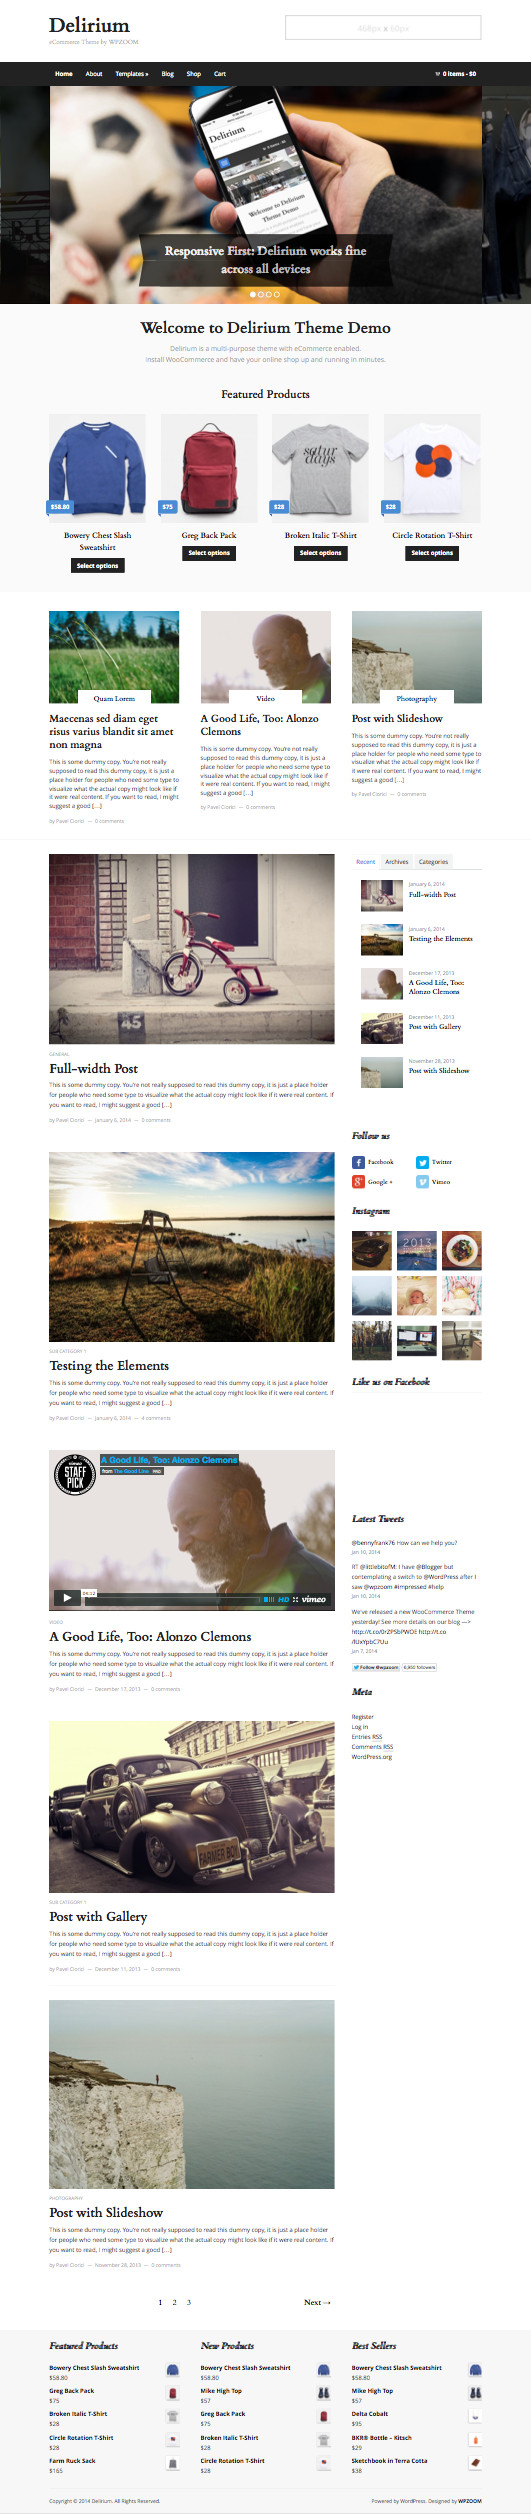 Delirium WordPress eCommerce Business Theme